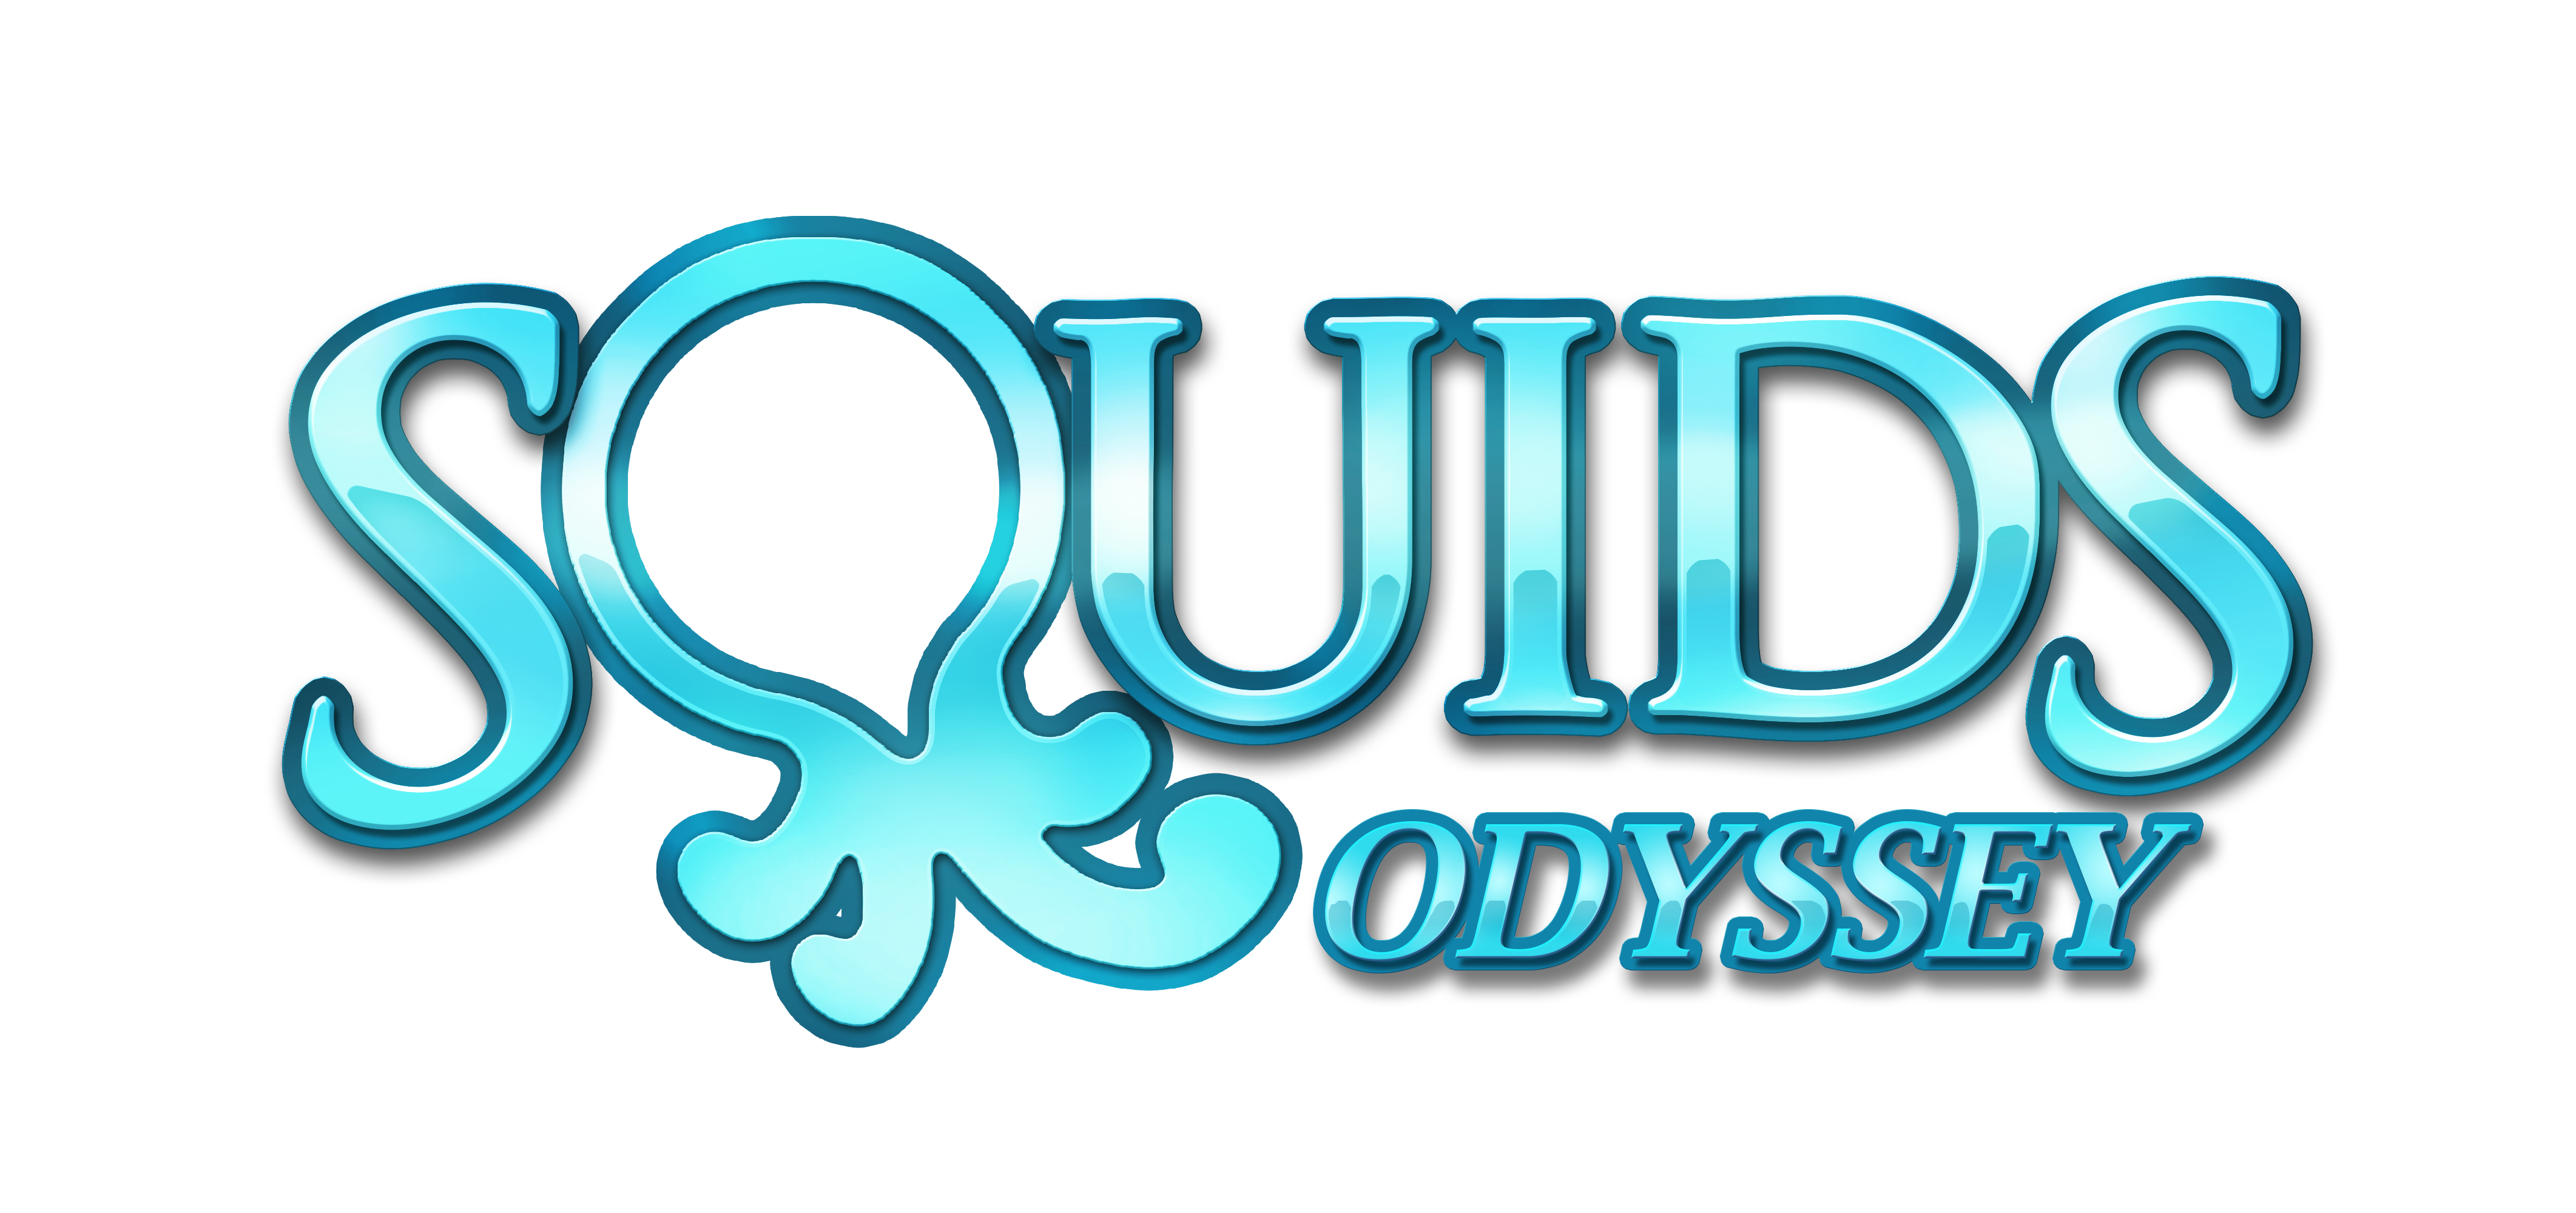 Squids Odyssey Review: I'd Like To Be Under The Sea